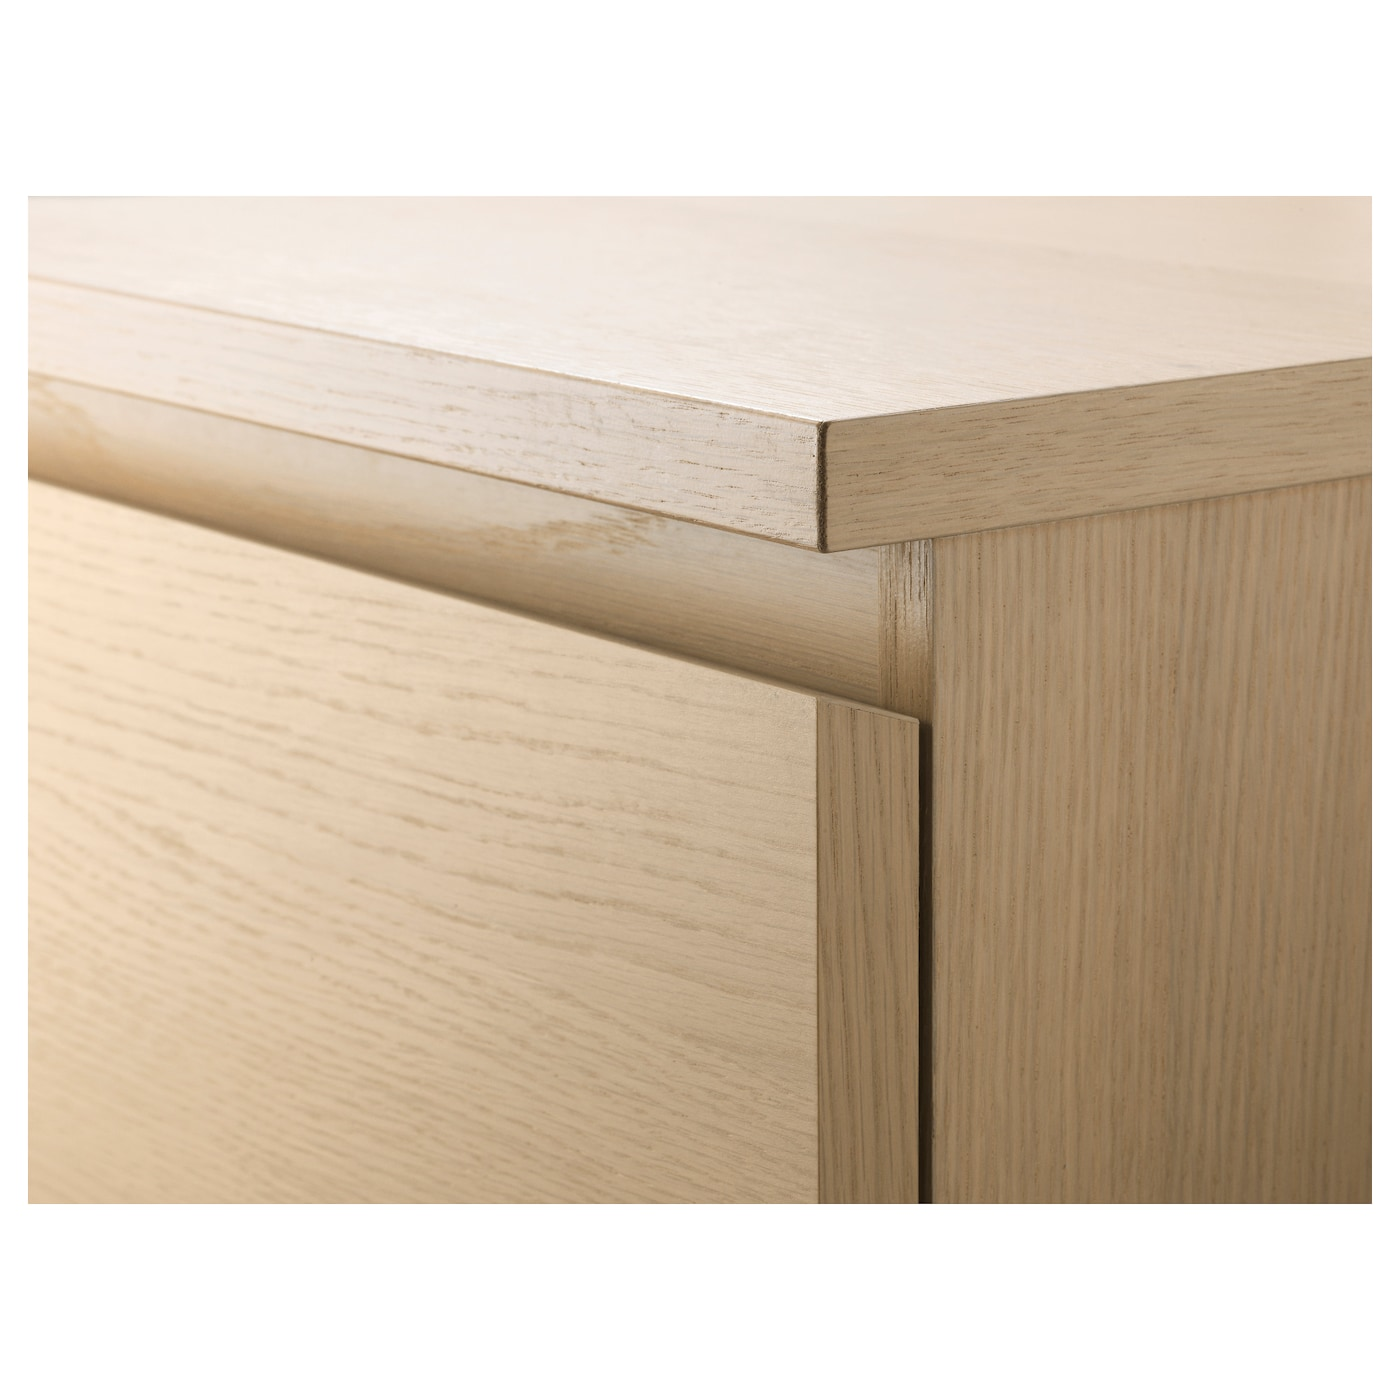 malm chest of 3 drawers white stained oak veneer 80x78 cm ikea. Black Bedroom Furniture Sets. Home Design Ideas